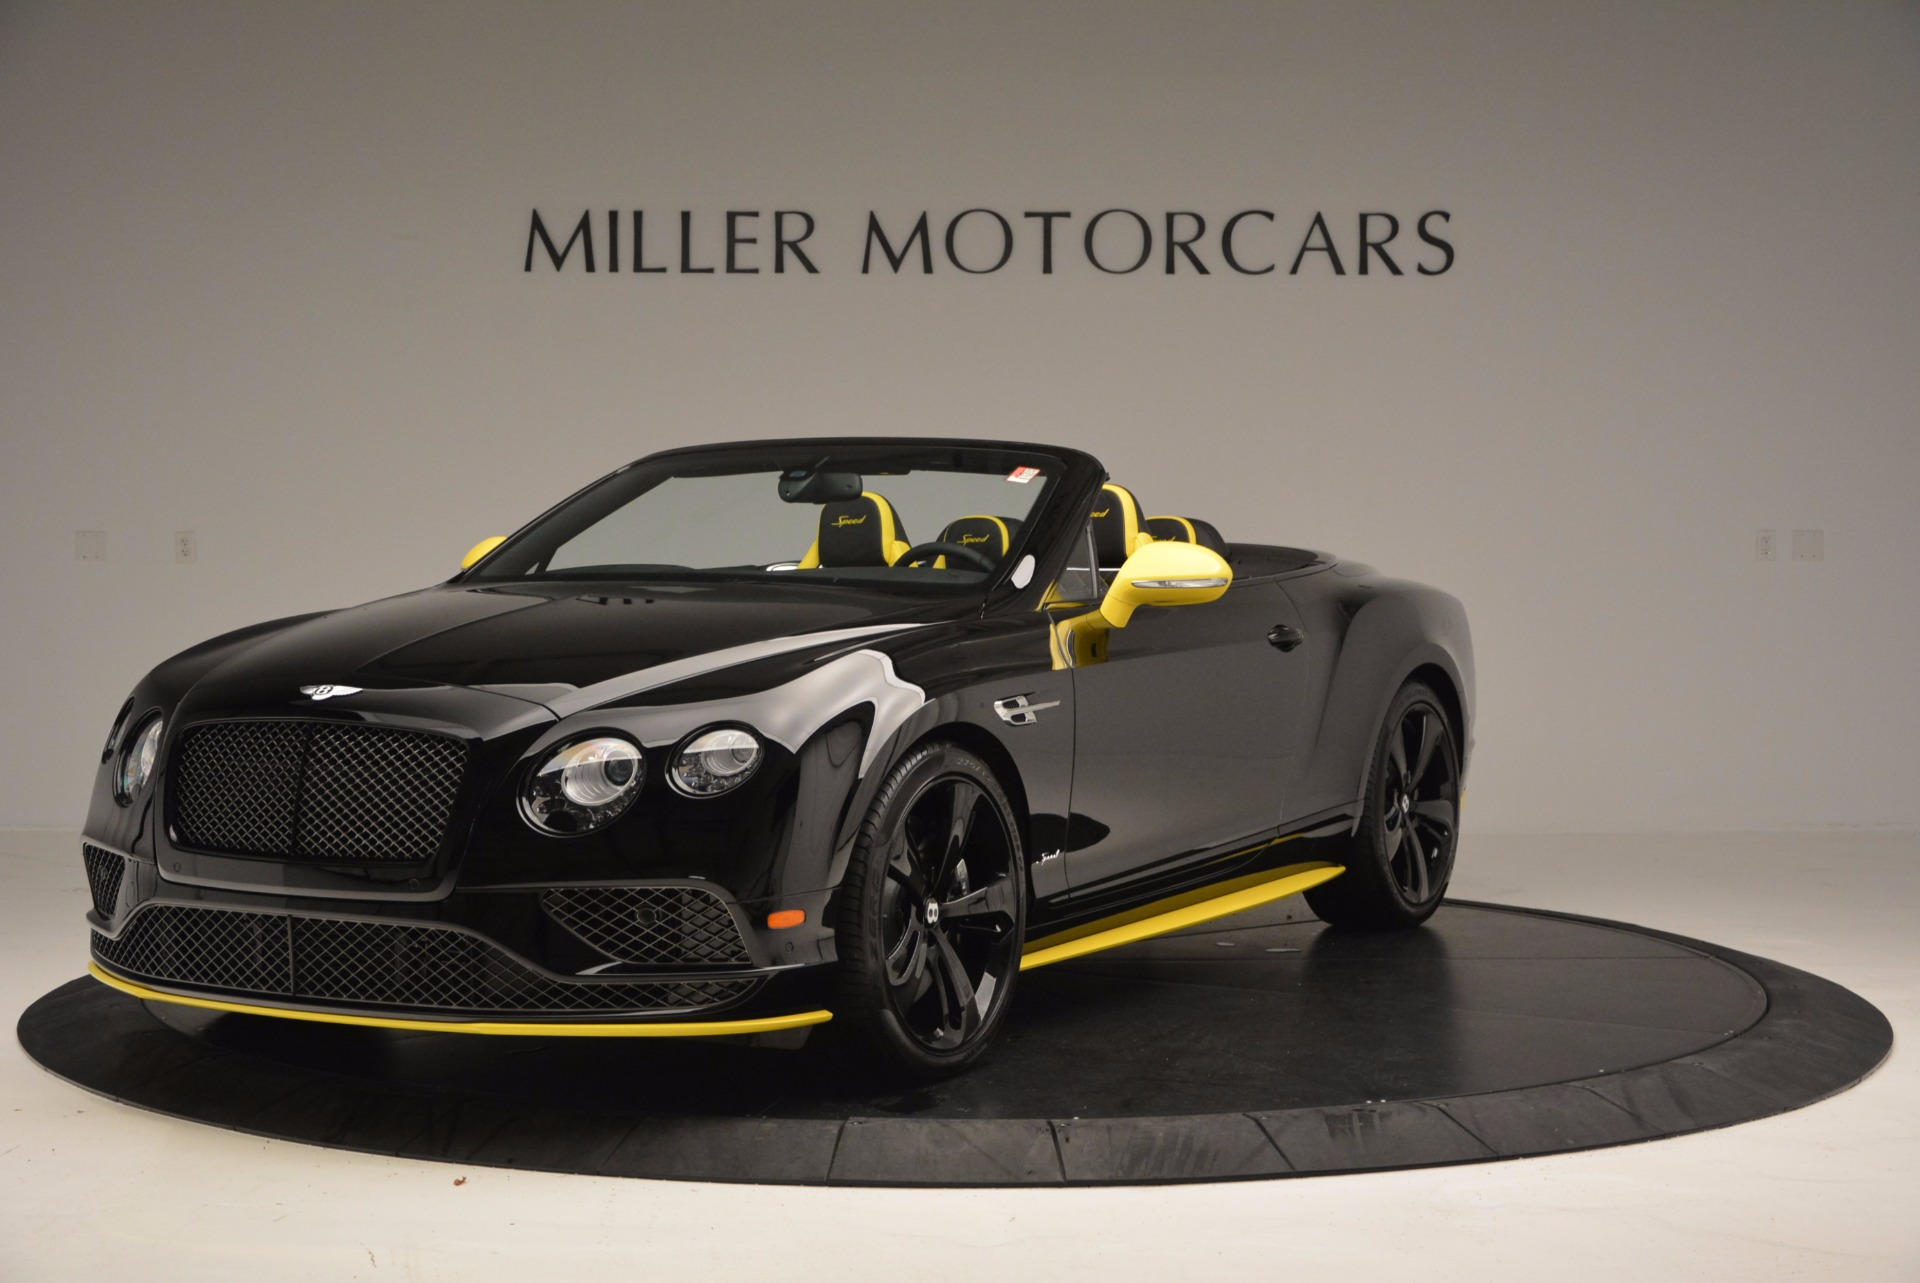 New 2017 Bentley Continental GT Speed Black Edition Convertible for sale Sold at Bentley Greenwich in Greenwich CT 06830 1